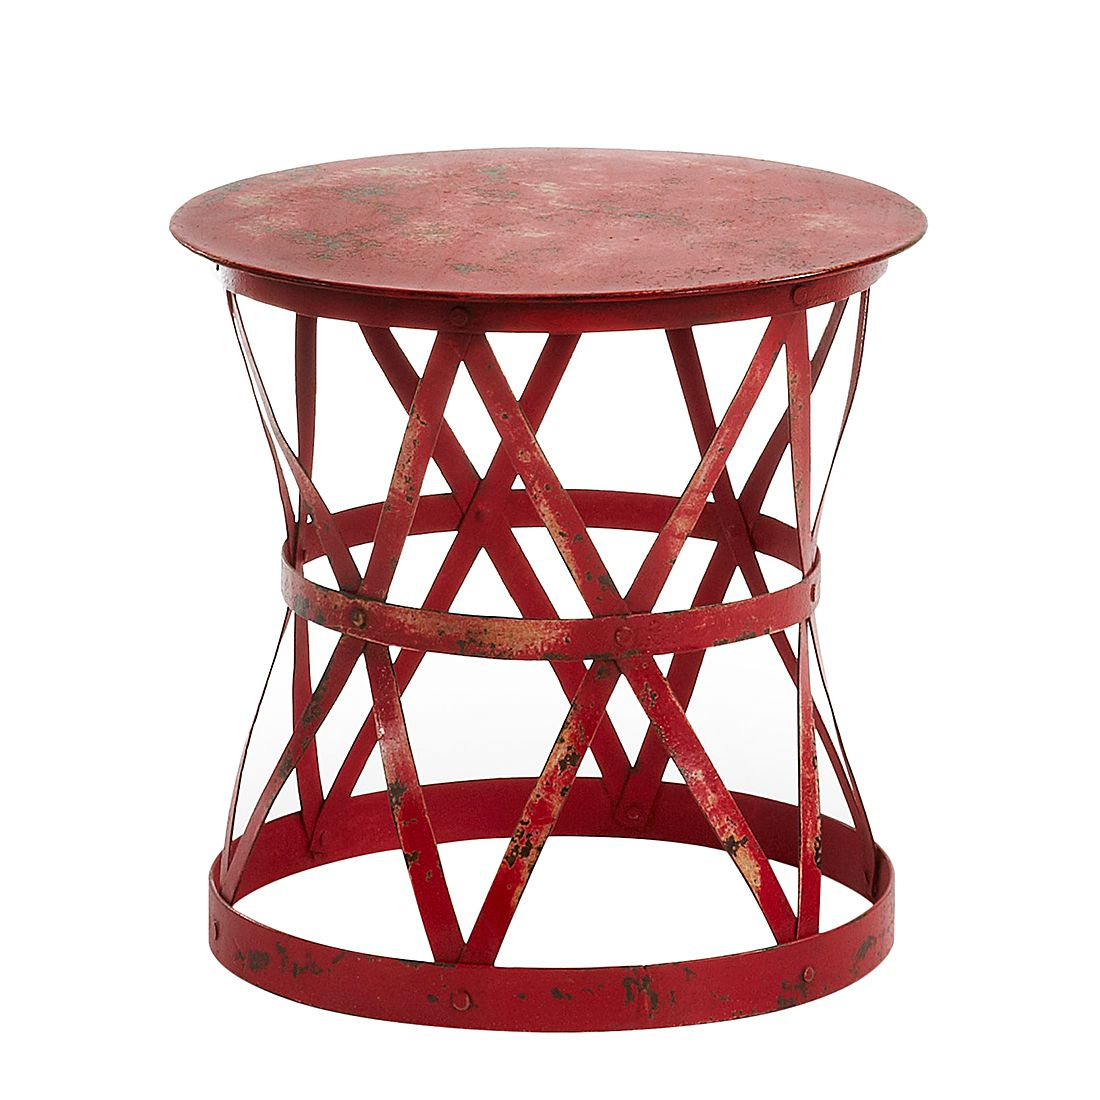 Table d'appoint Banchory - Rouge, ars manufacti